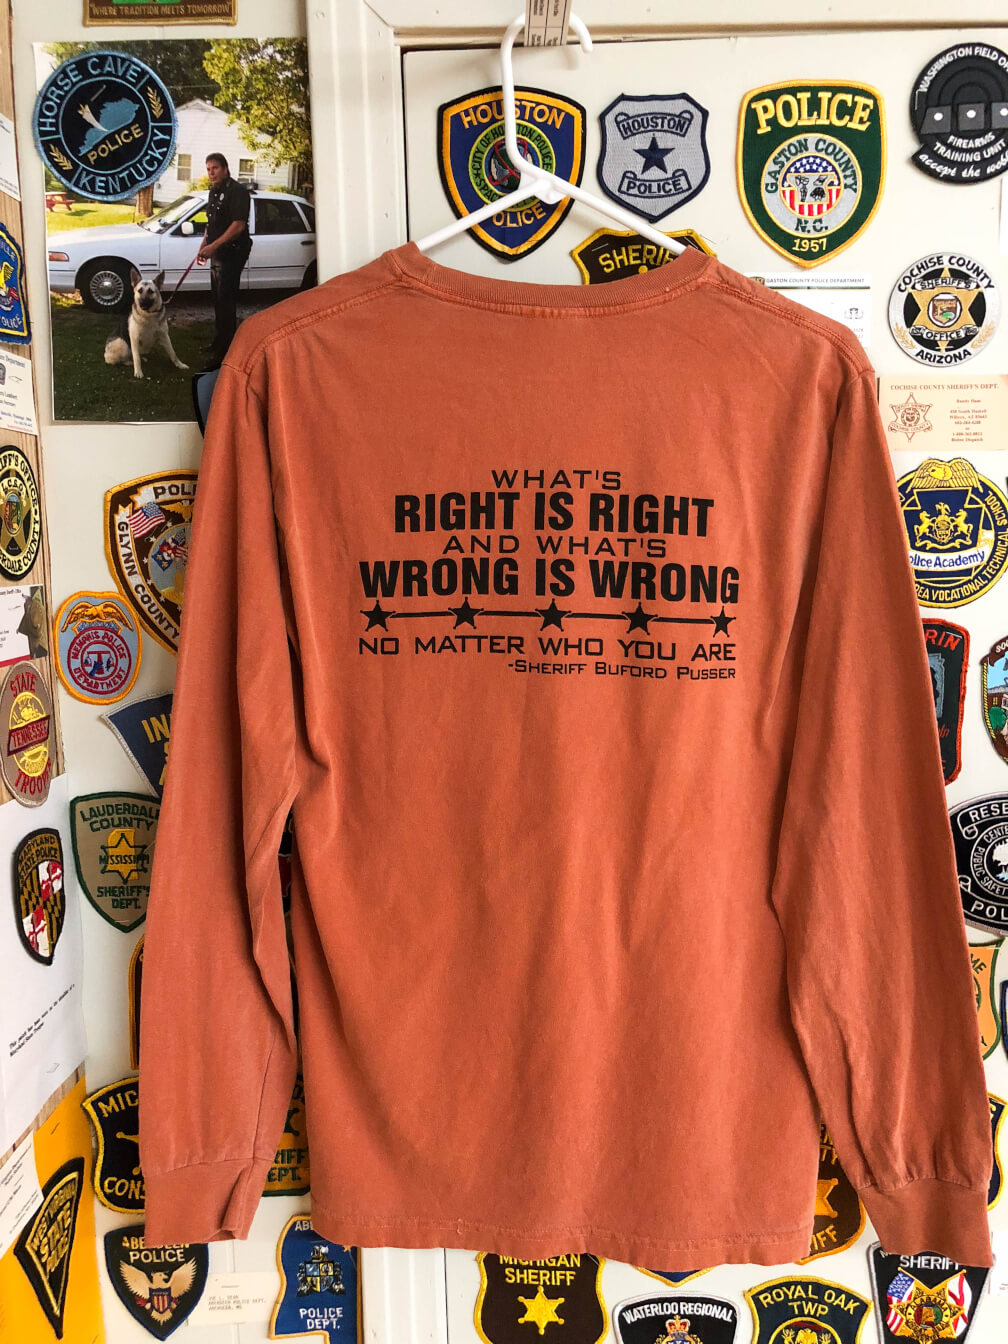 ebb5f1aade51 He Walked Tall - What's Right is Right - T-Shirt Long Yam - Sheriff ...